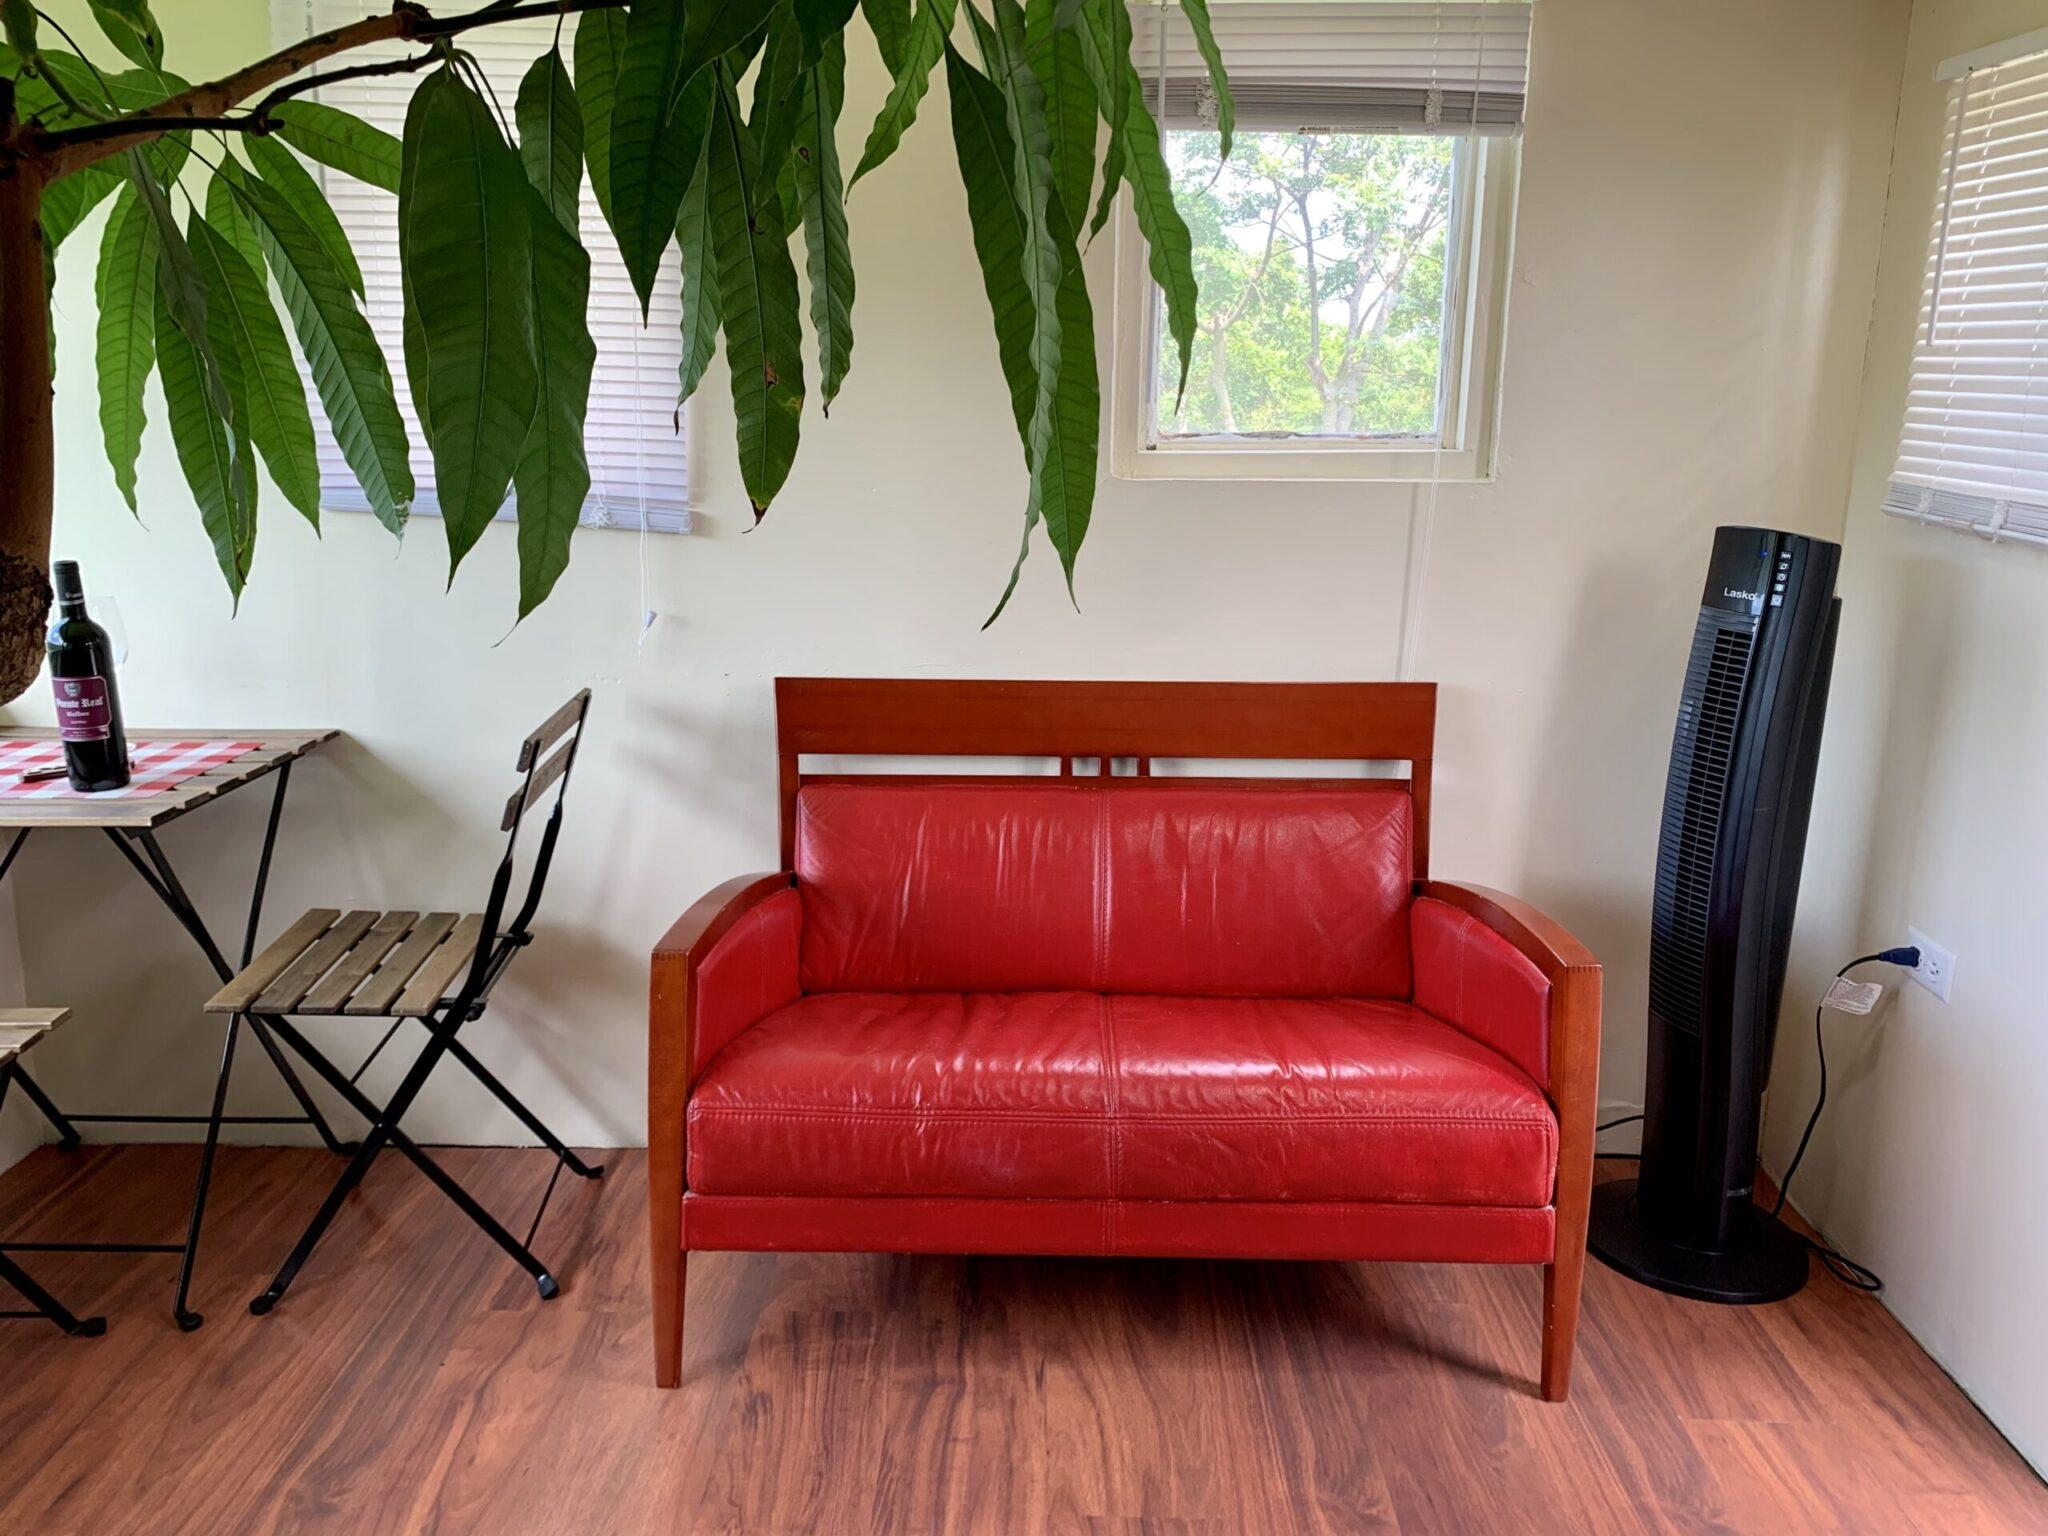 Red loveseat and dining area